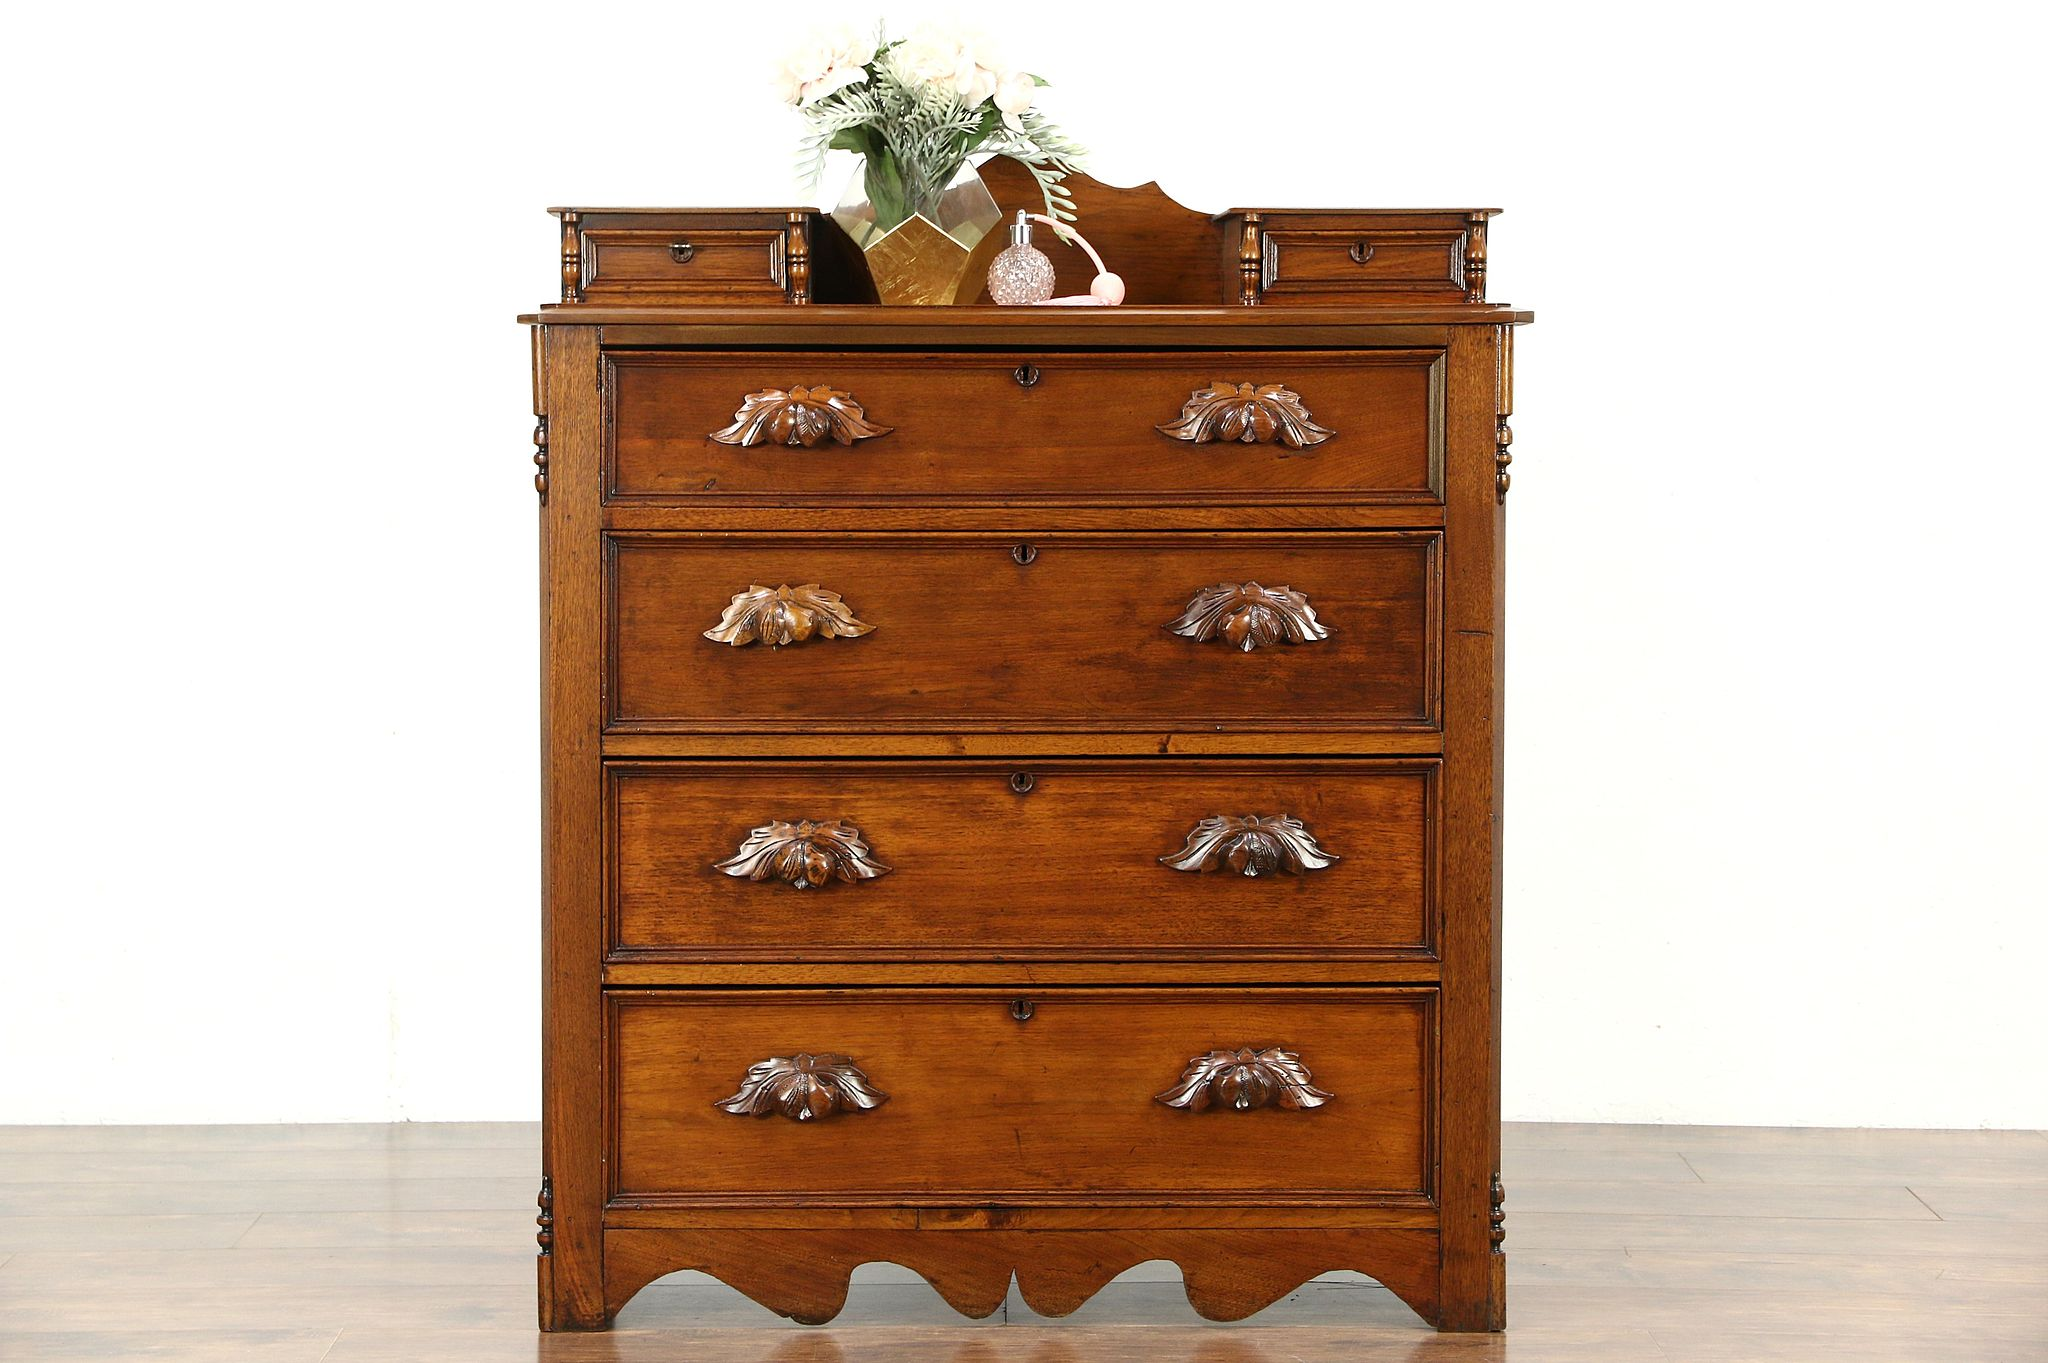 hardware dresser drawer french provincial robinson pulls antique style htm restoration s handles